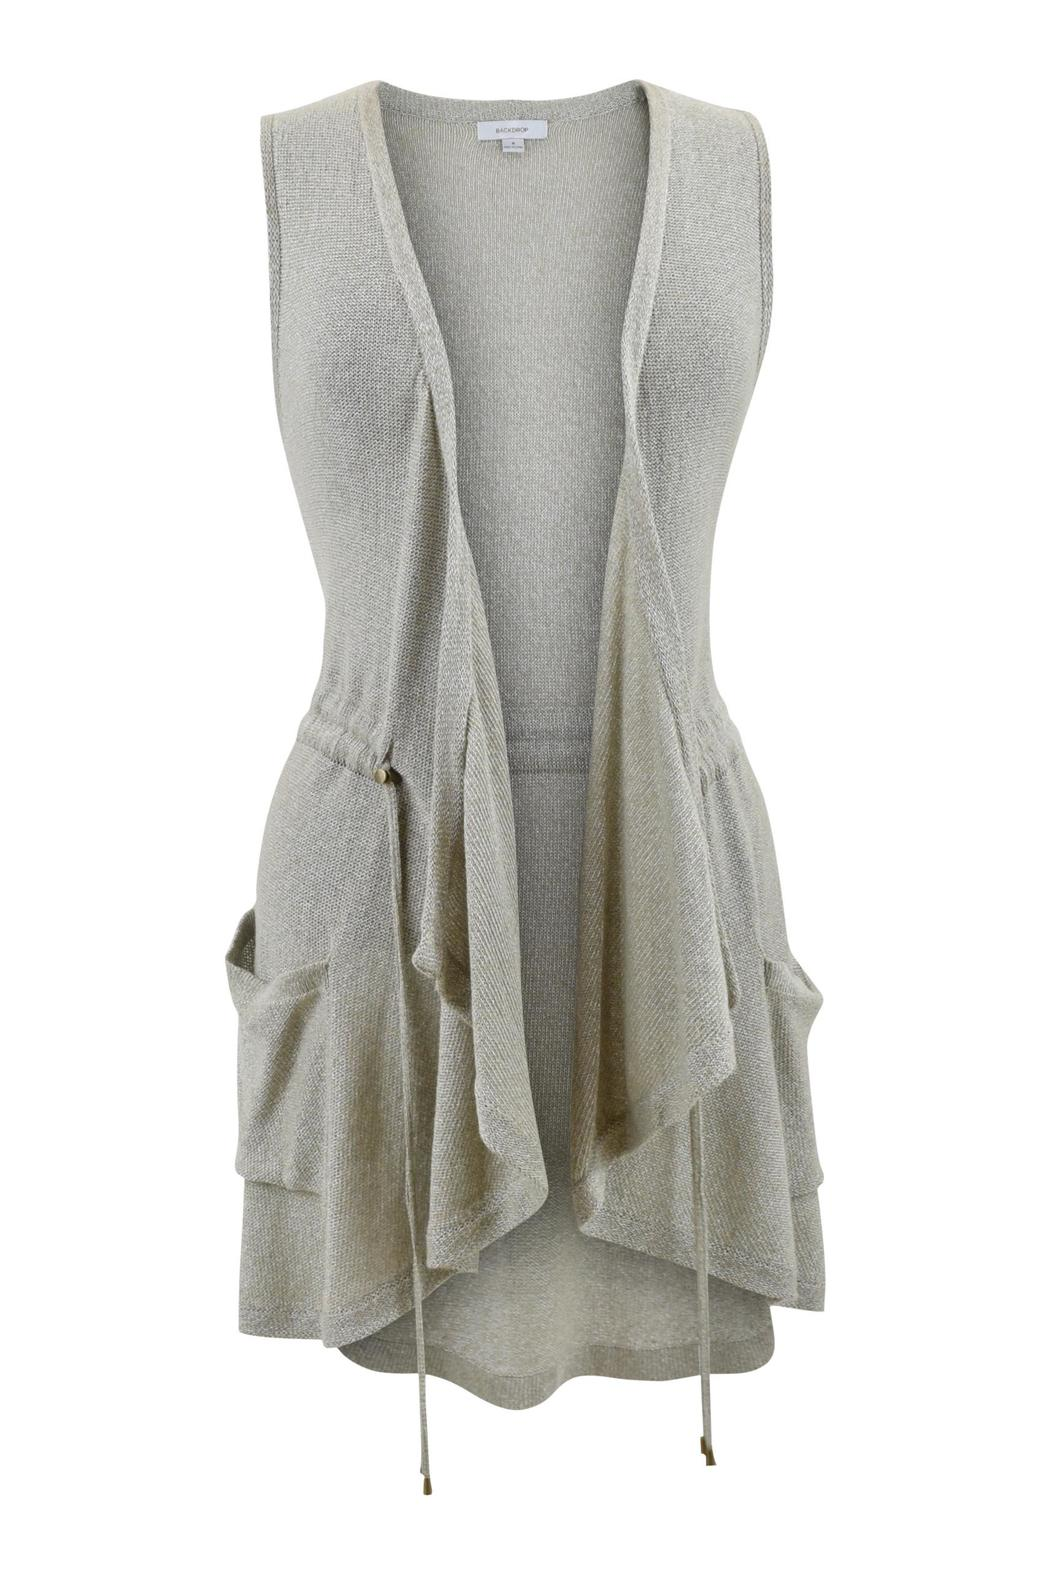 Backdrop Fashion Champagne Drawstring Vest - Front Cropped Image